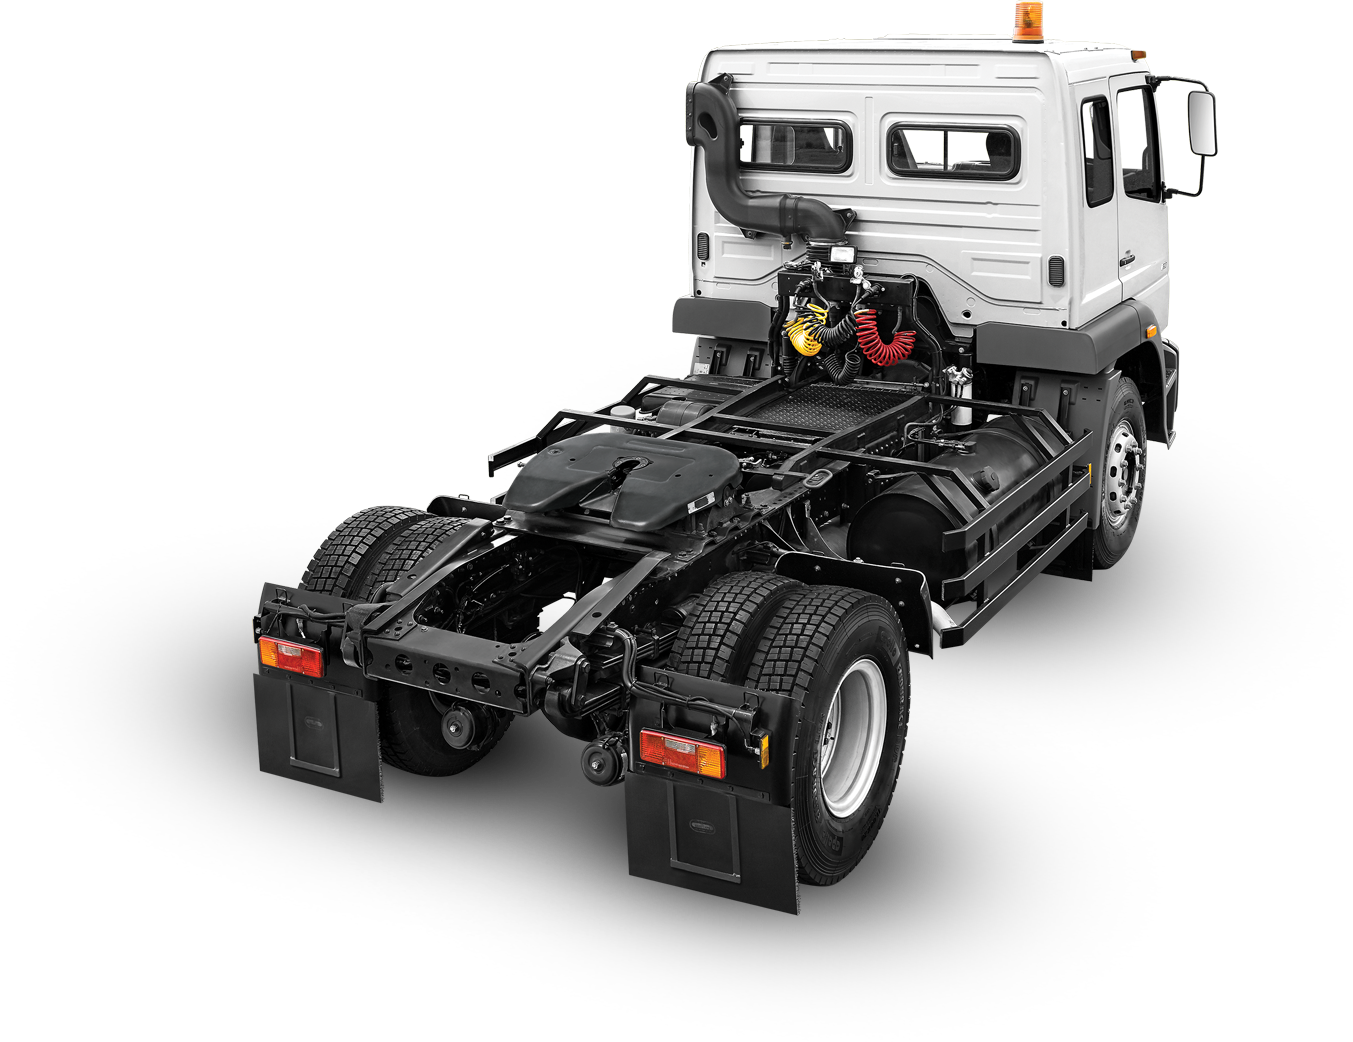 http://st-fuso.commutalk.com/assets/uploads/products/chassis.png